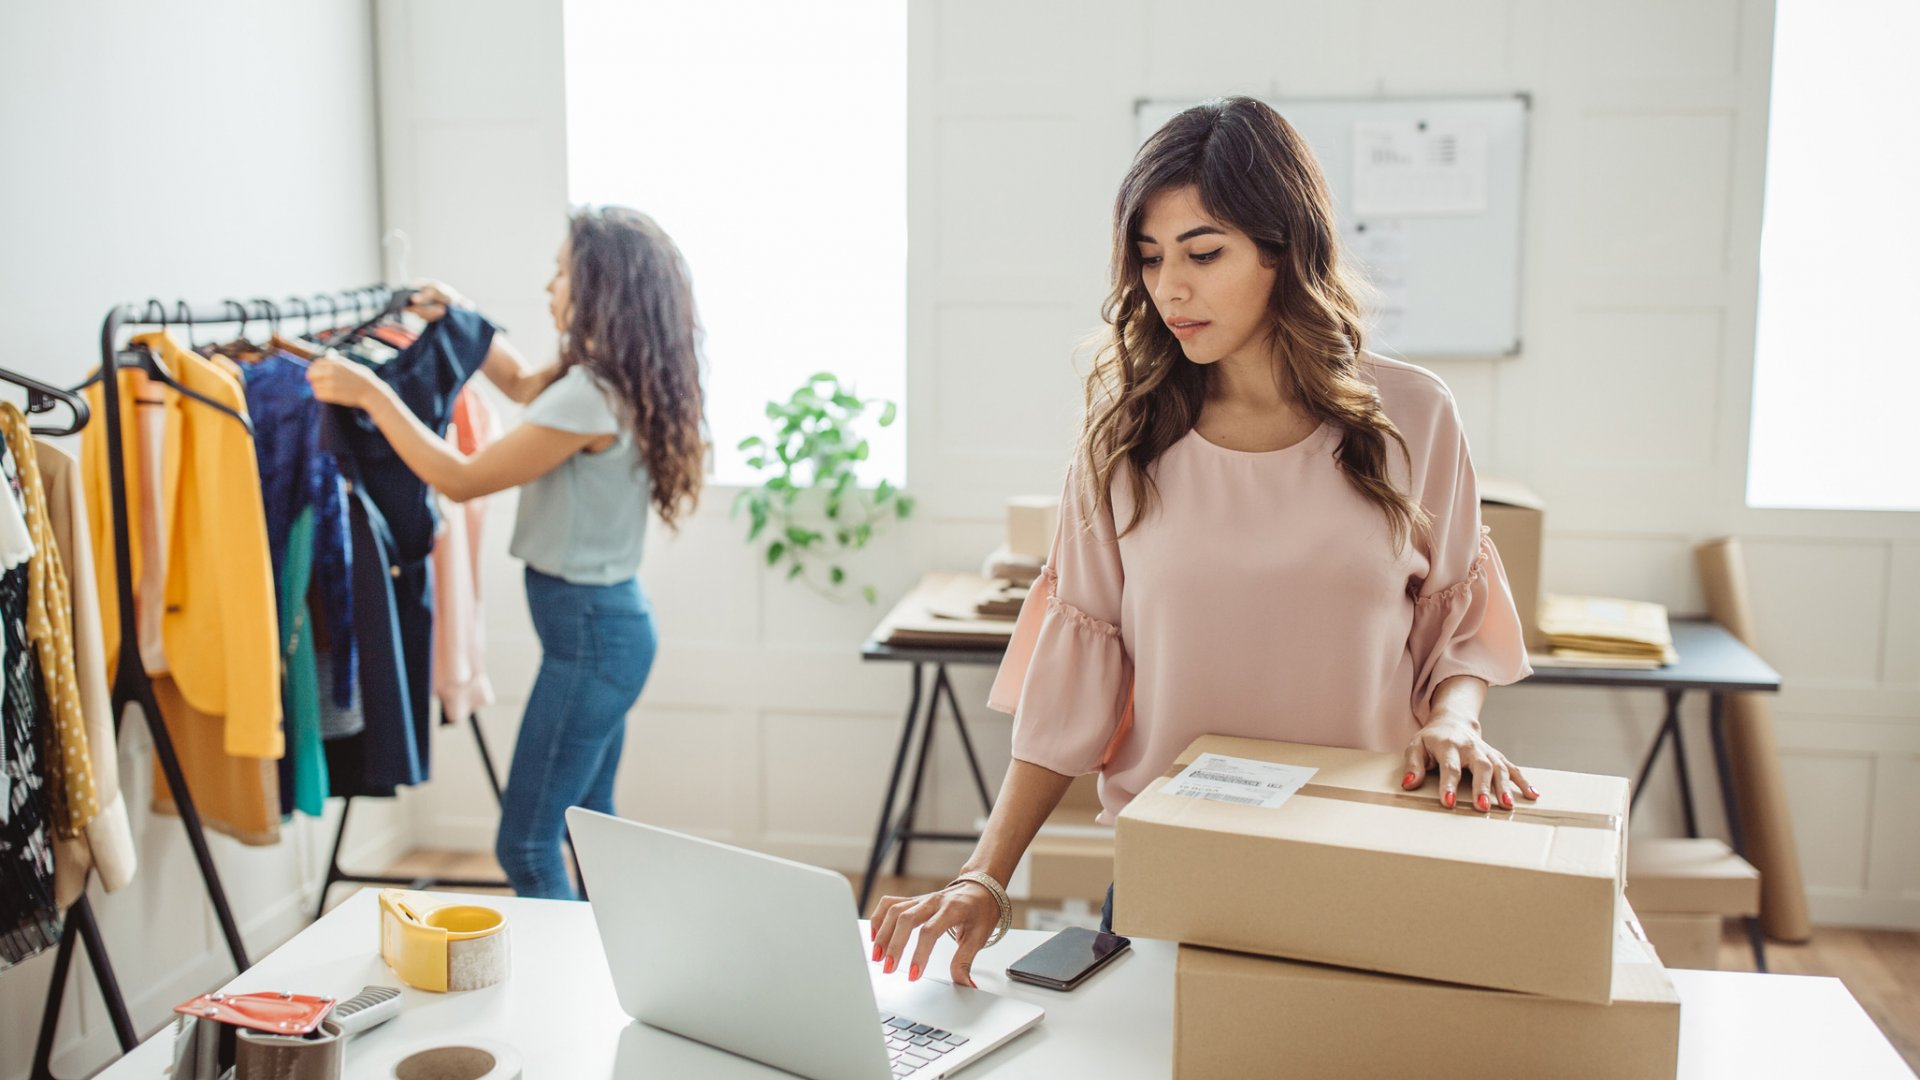 3 Retail Strategies to Drive Growth in 2021